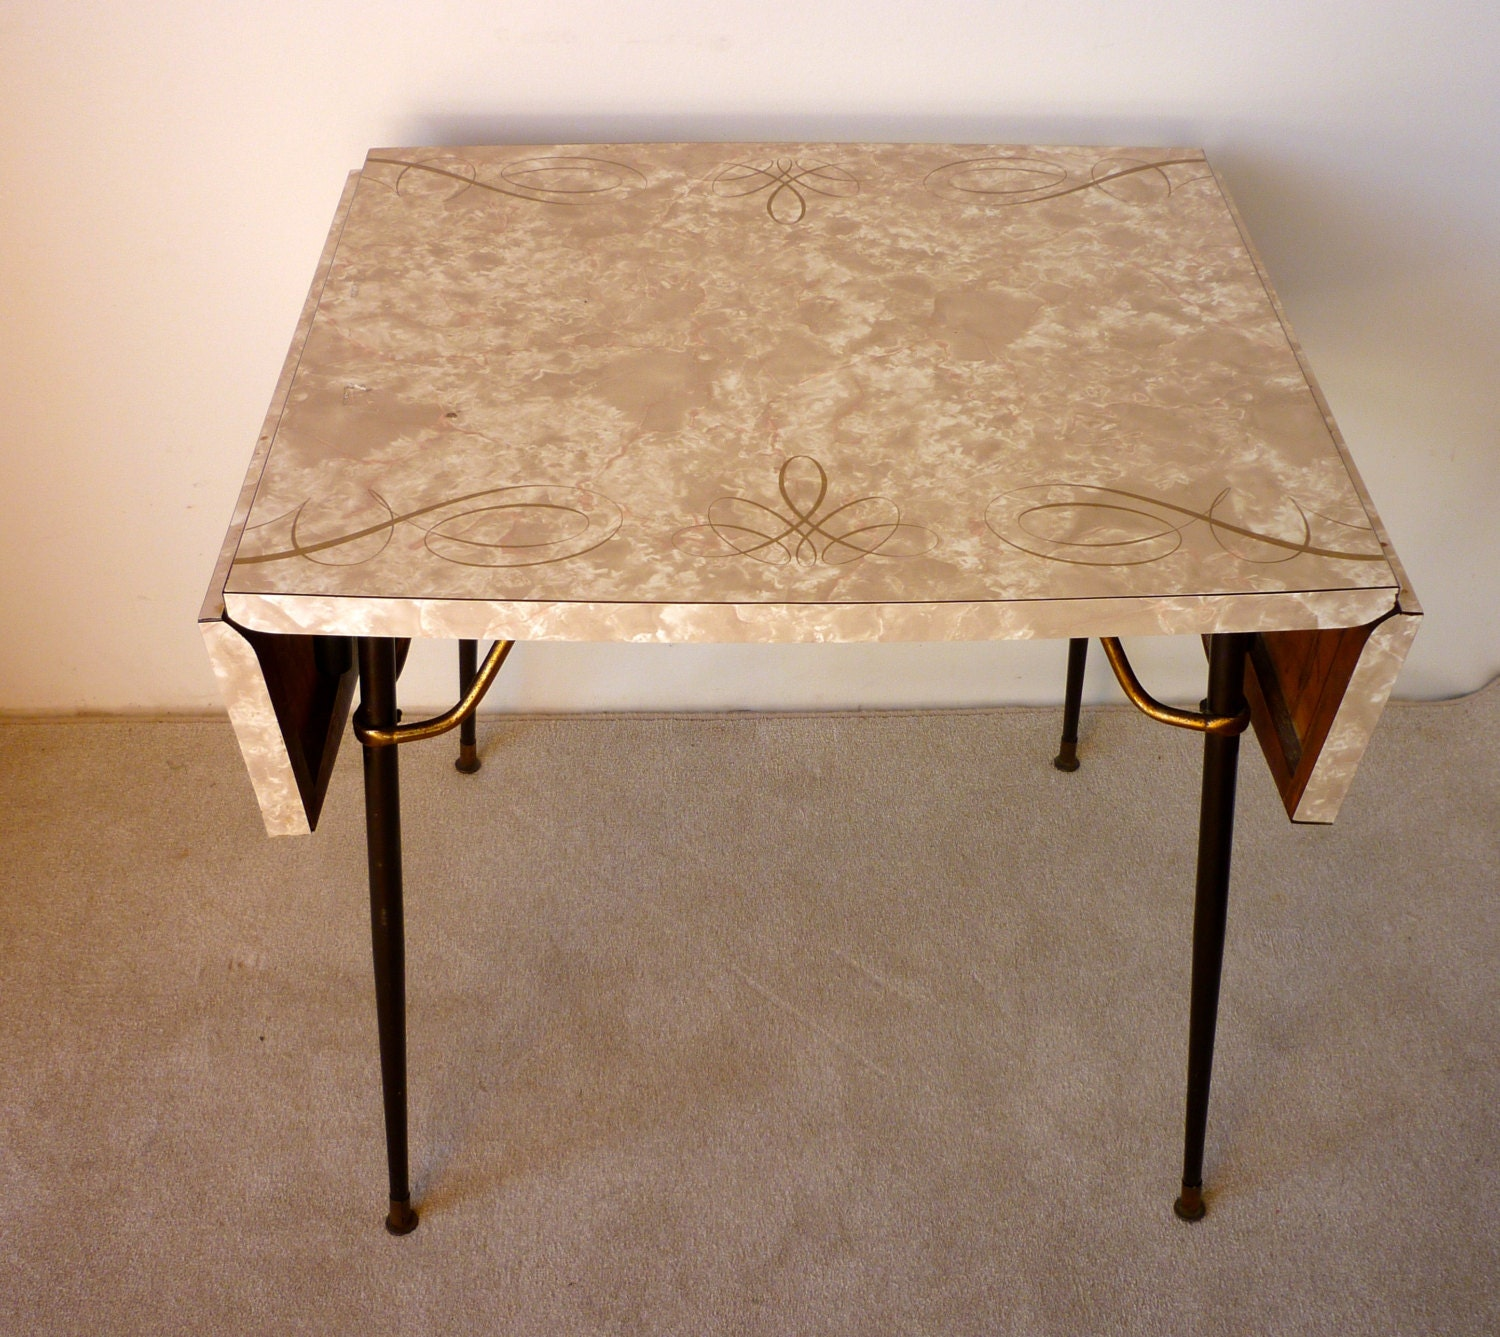 Old Kitchen Table: Vintage Retro Formica Table Mid Century Formica Kitchen